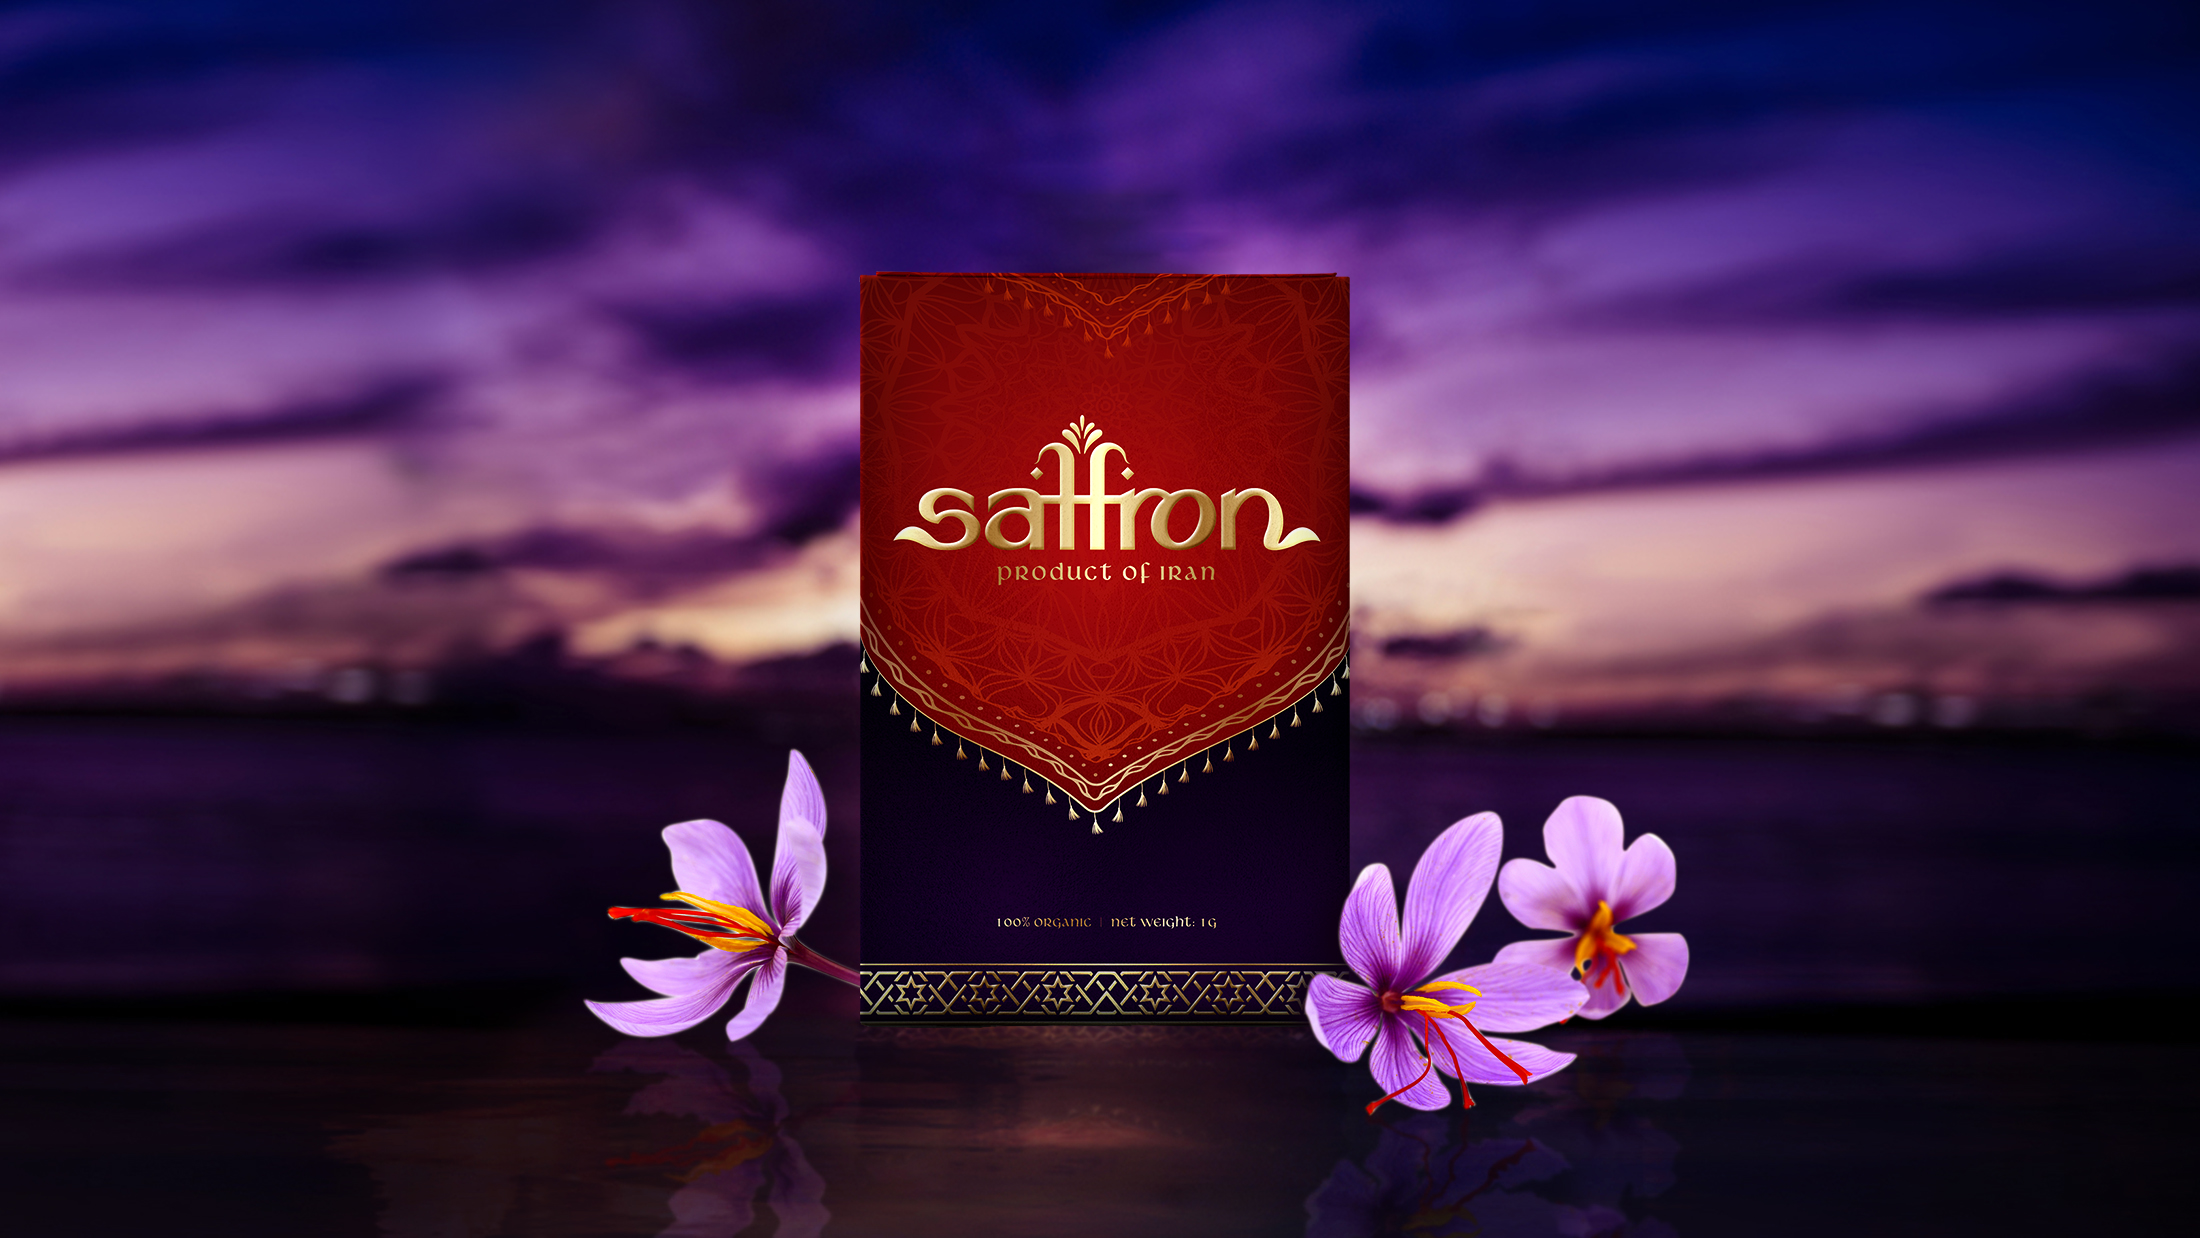 New Brand Creation and Packaging Design for Saffron for the Vietnamese Market / World Brand & Packaging Design Society